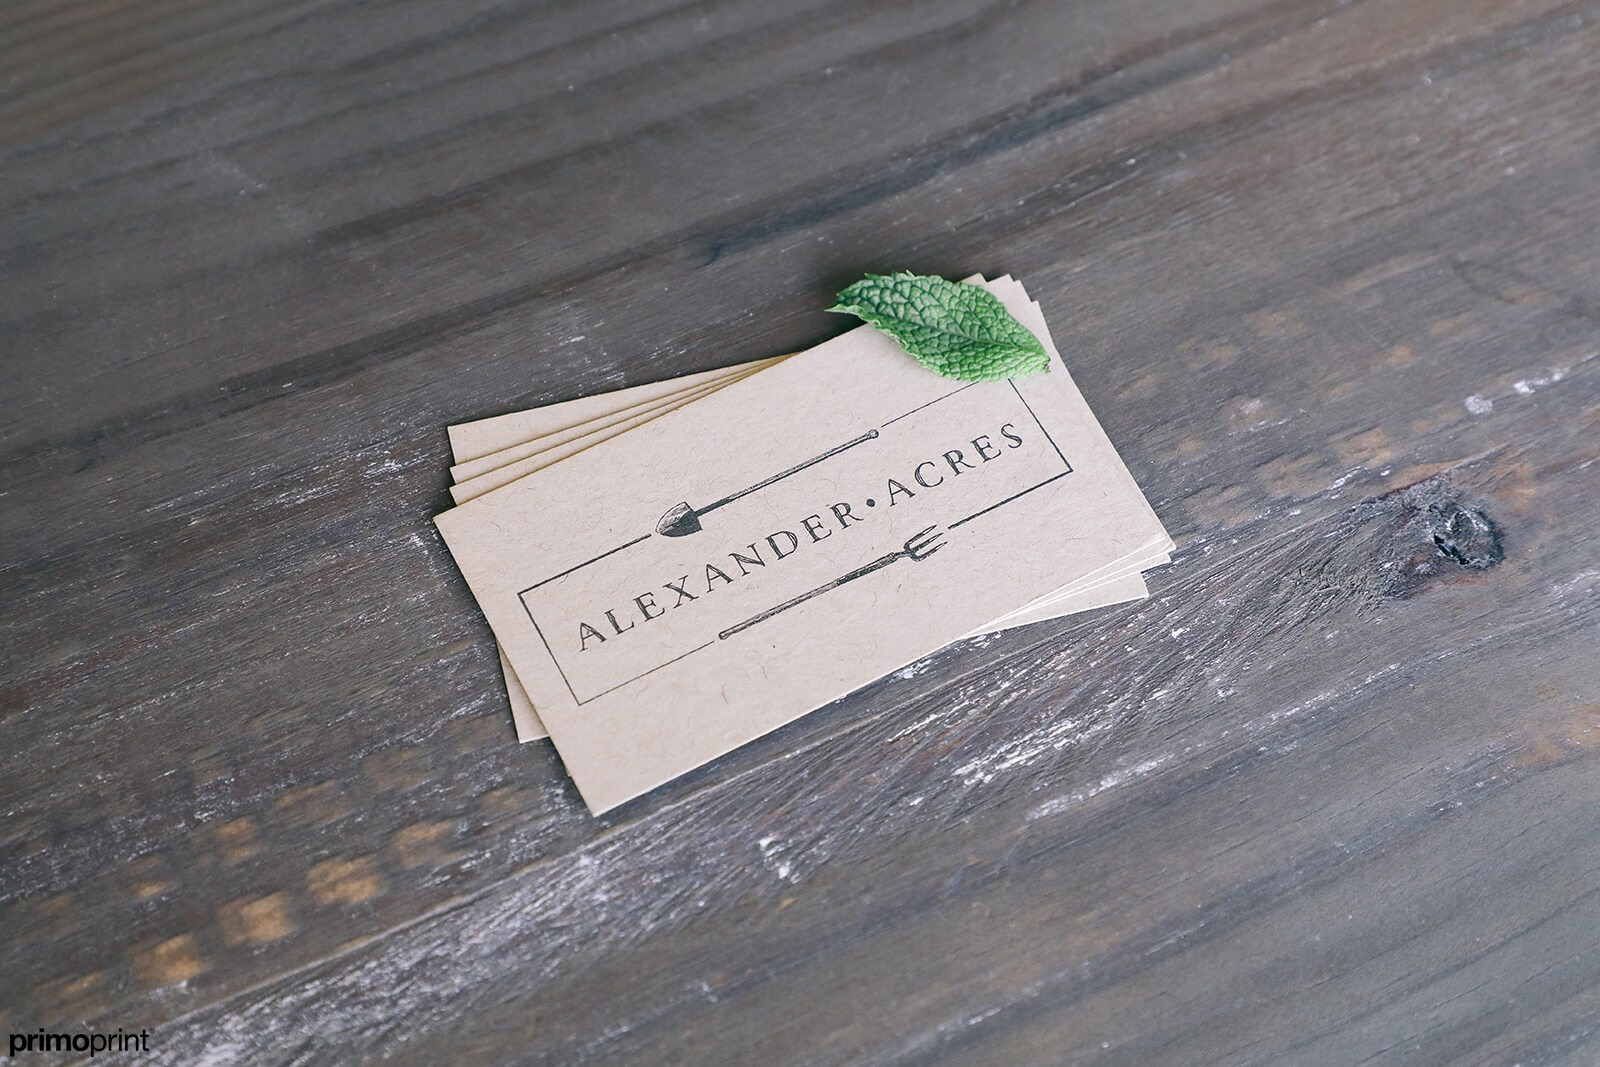 Kraft business cards contain 30% recycled materials.